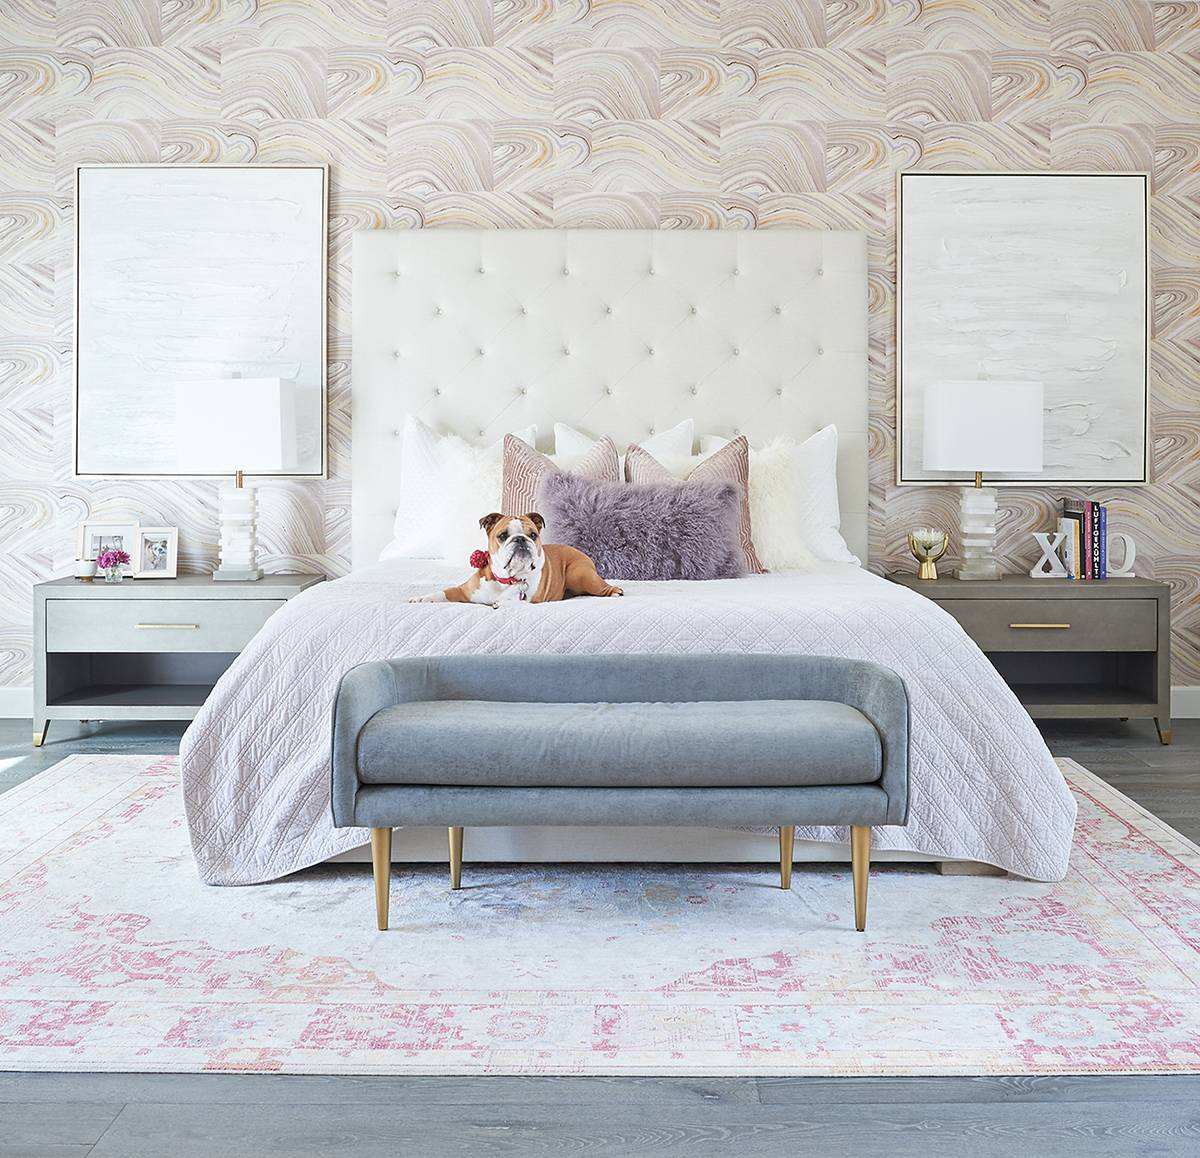 Photo of bedroom remodel done by Jaki Yermian of JY Design Interiors. There is an english bulldog posed on the bed